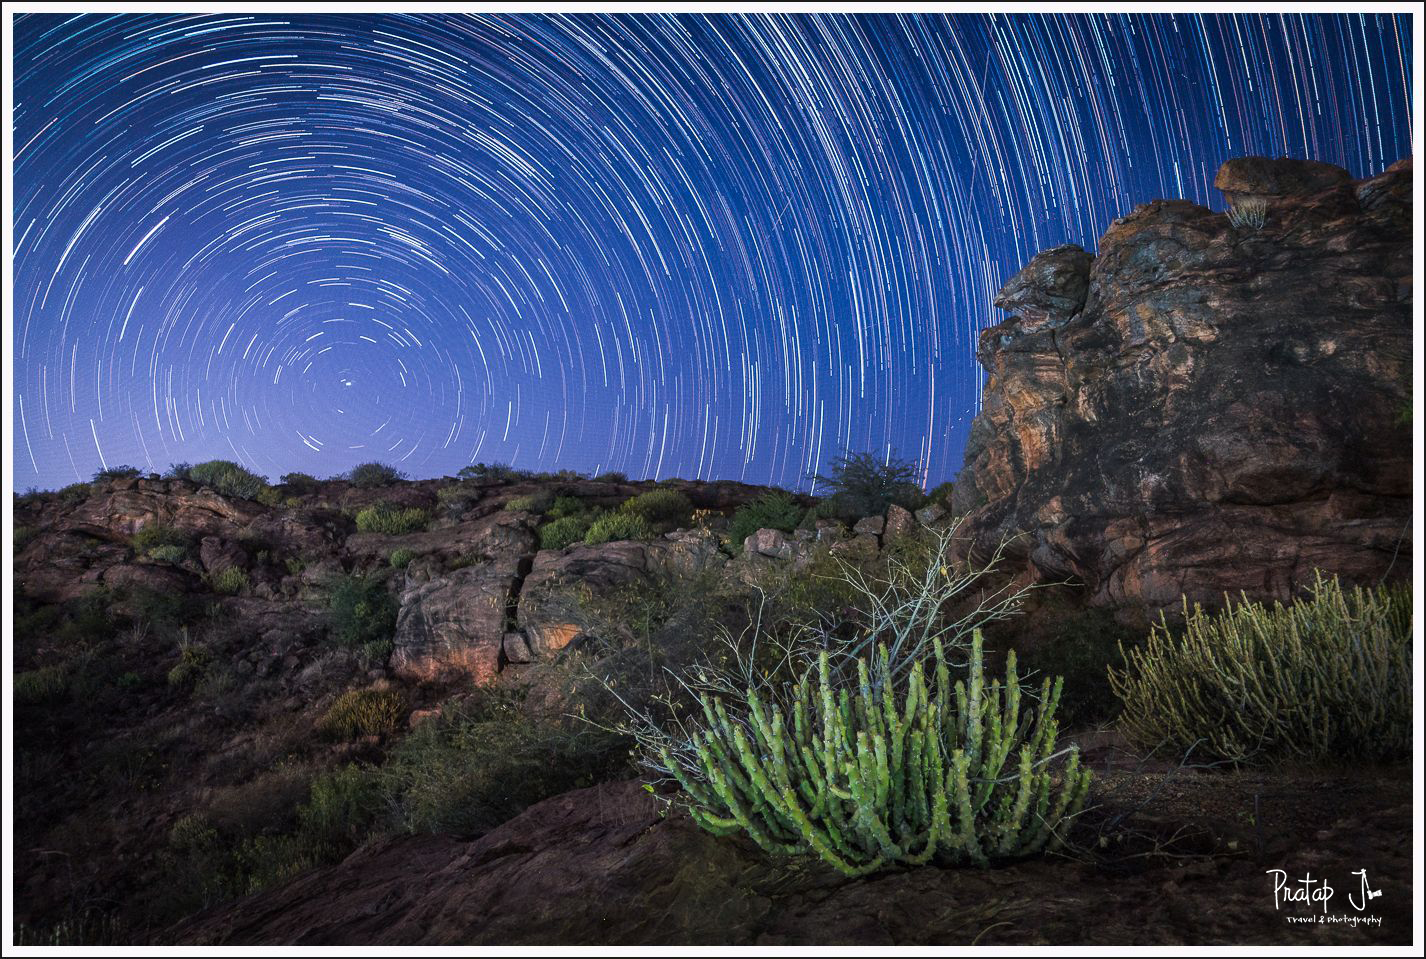 Star trails in Badami